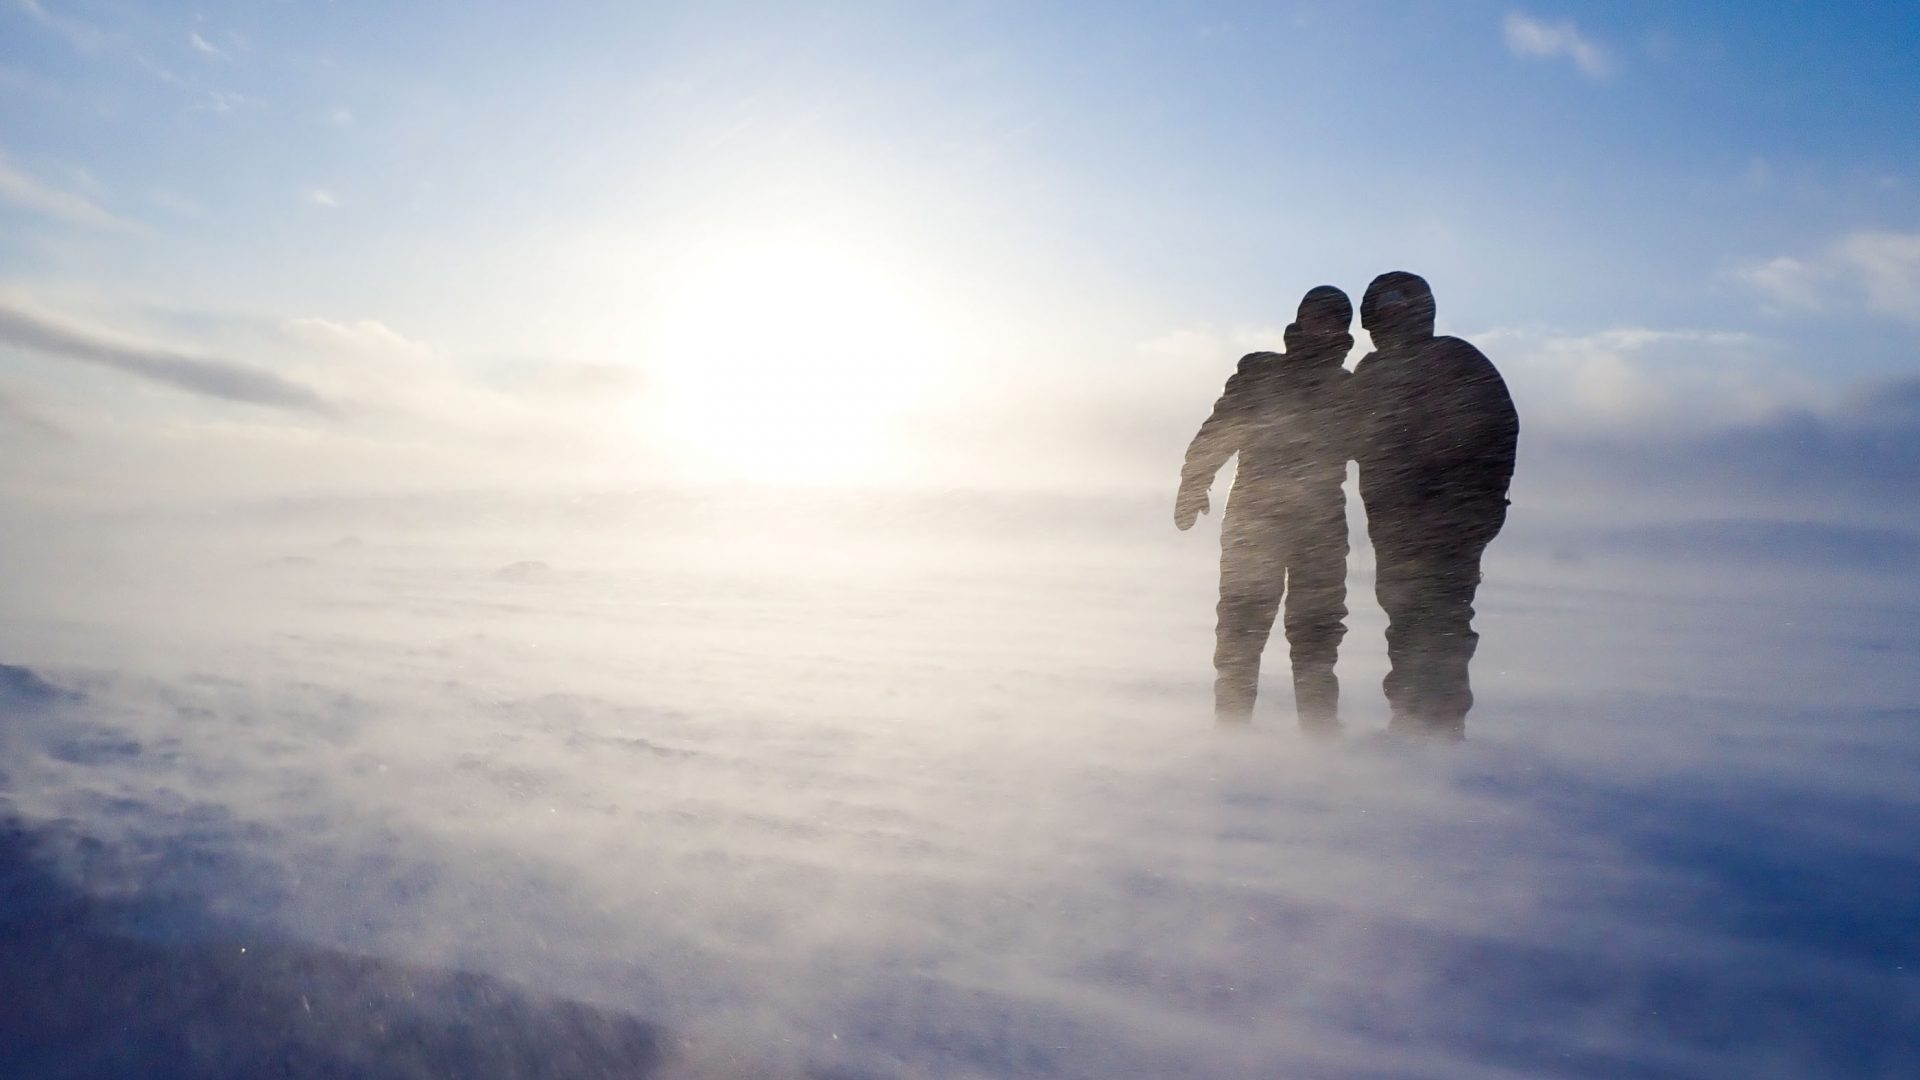 Two friends are silhouetted in the snow.